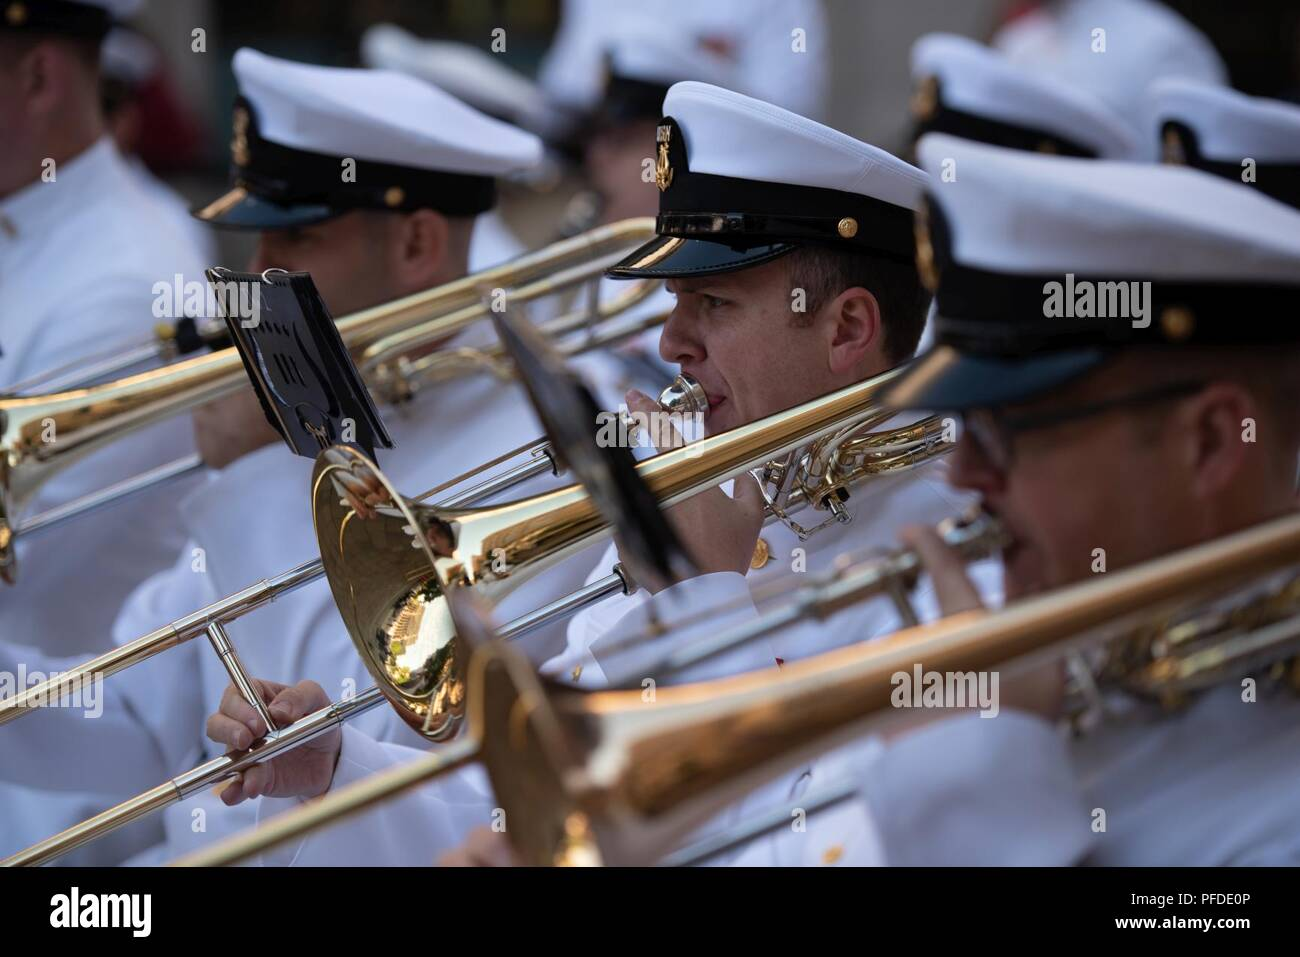 WASHINGTON (June 5, 2018) Musician 1st Class Ken Moses, trombone instrumentalist with the U.S. Navy Ceremonial band performs at the U.S. Navy Memorial in Washington, D.C., during the commemoration of the 76th anniversary of the Battle of Midway. The Battle of Midway began on June 4 in 1942 and stands as one of the U.S. Navy's most historically significant naval battles. Fought on the high seas of the Pacific more than half a century ago, this battle altered the course of the war in the Pacific and thereby shaped the outcome of world events. - Stock Image